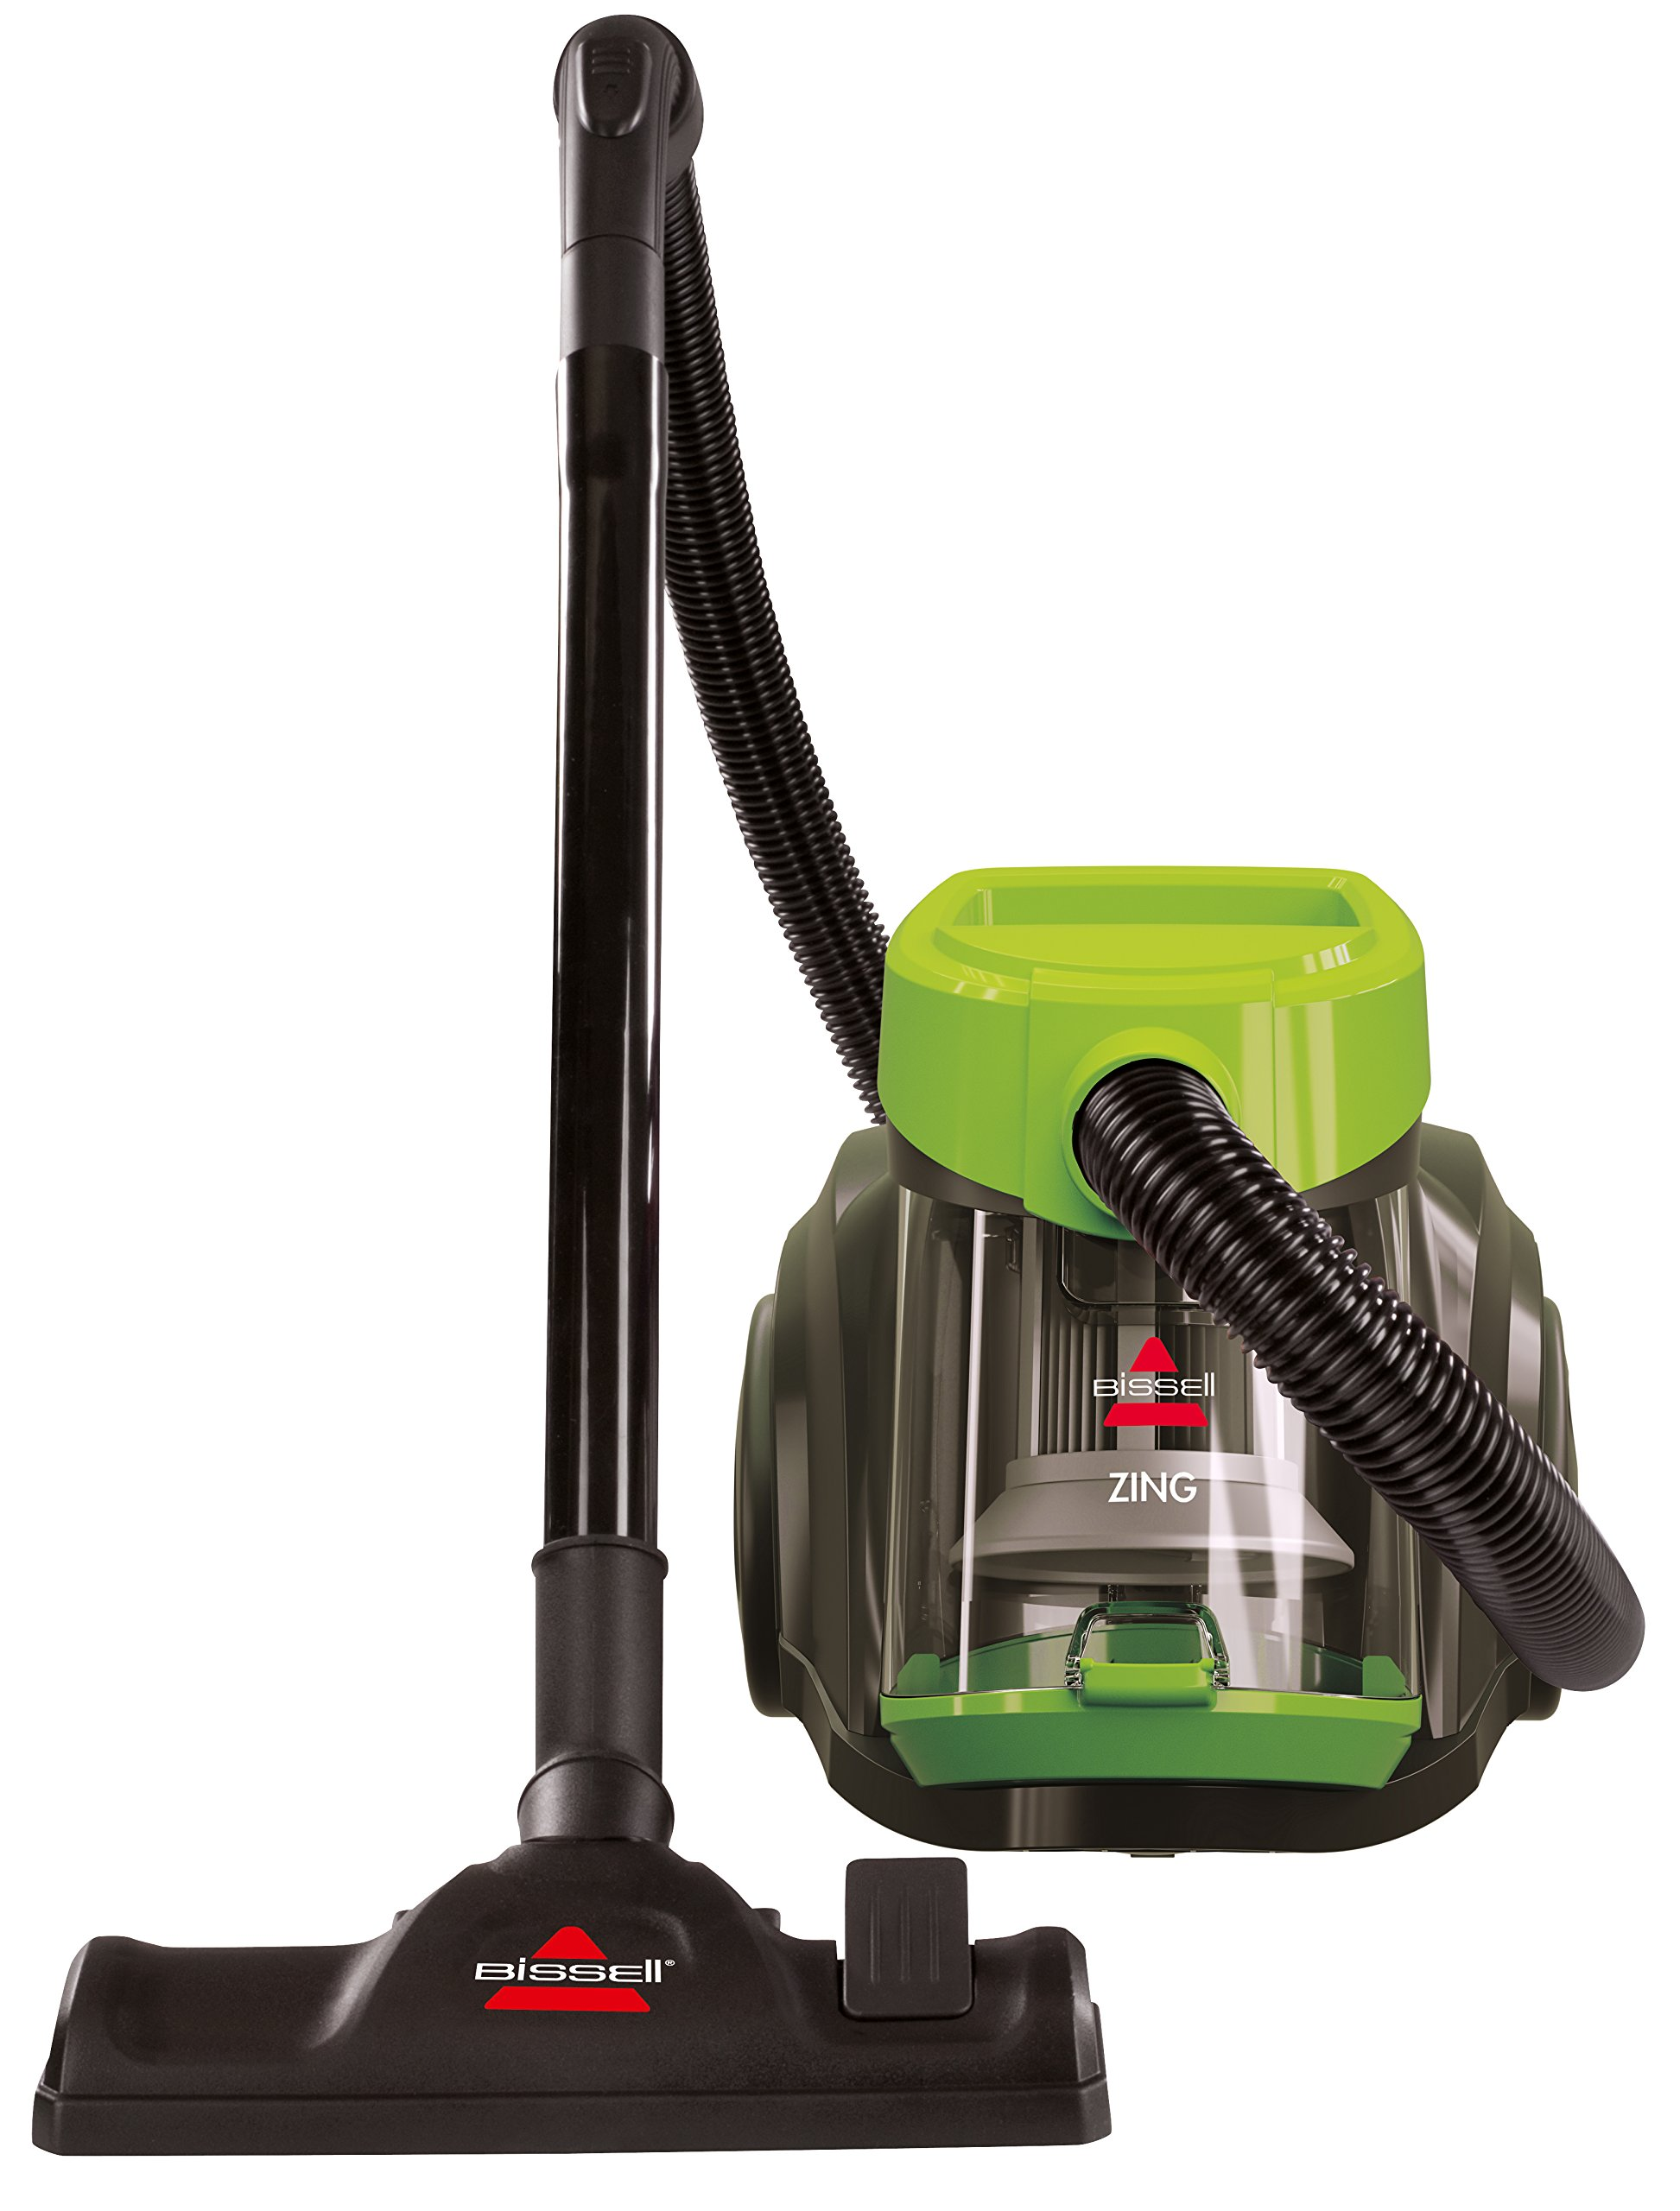 Bissell Zing Bagless Canister Vacuum Corded Plastic Metal